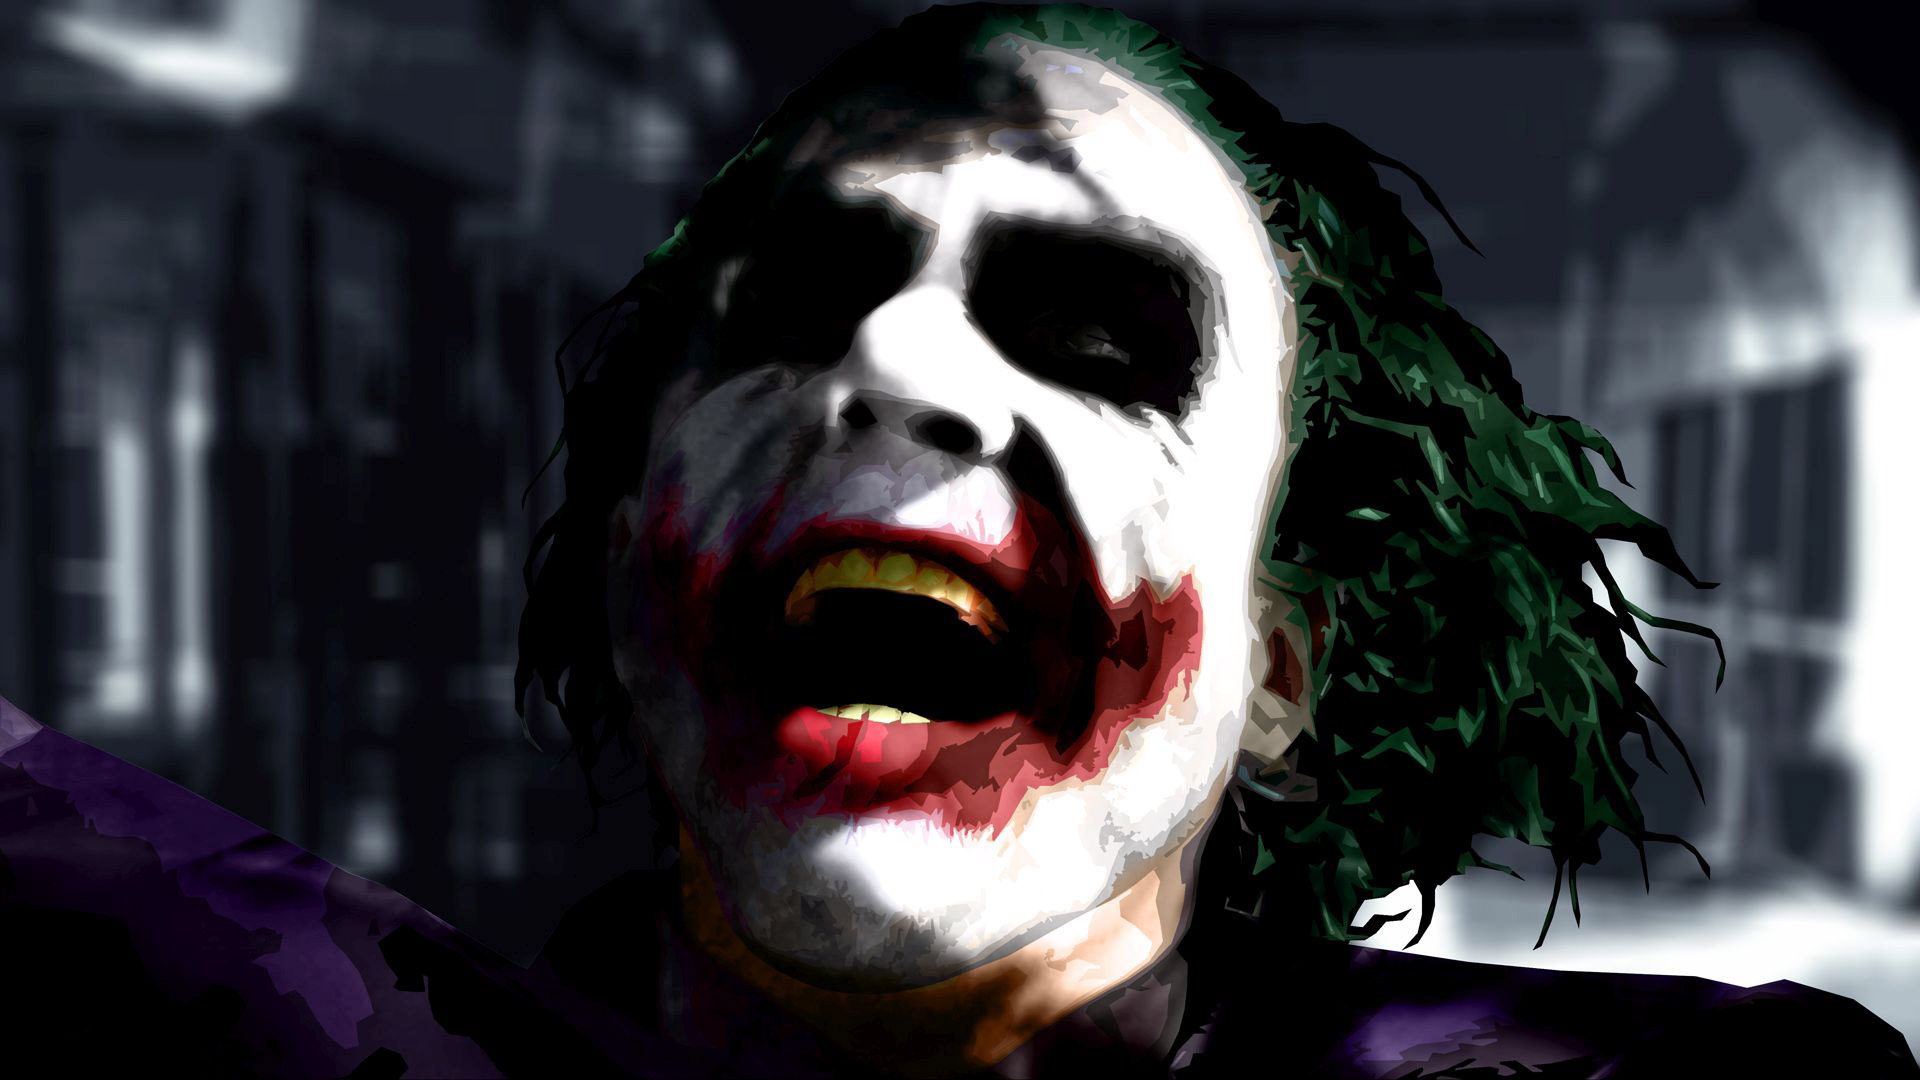 The Joker   The Dark Knight wallpaper 20417 1920x1080